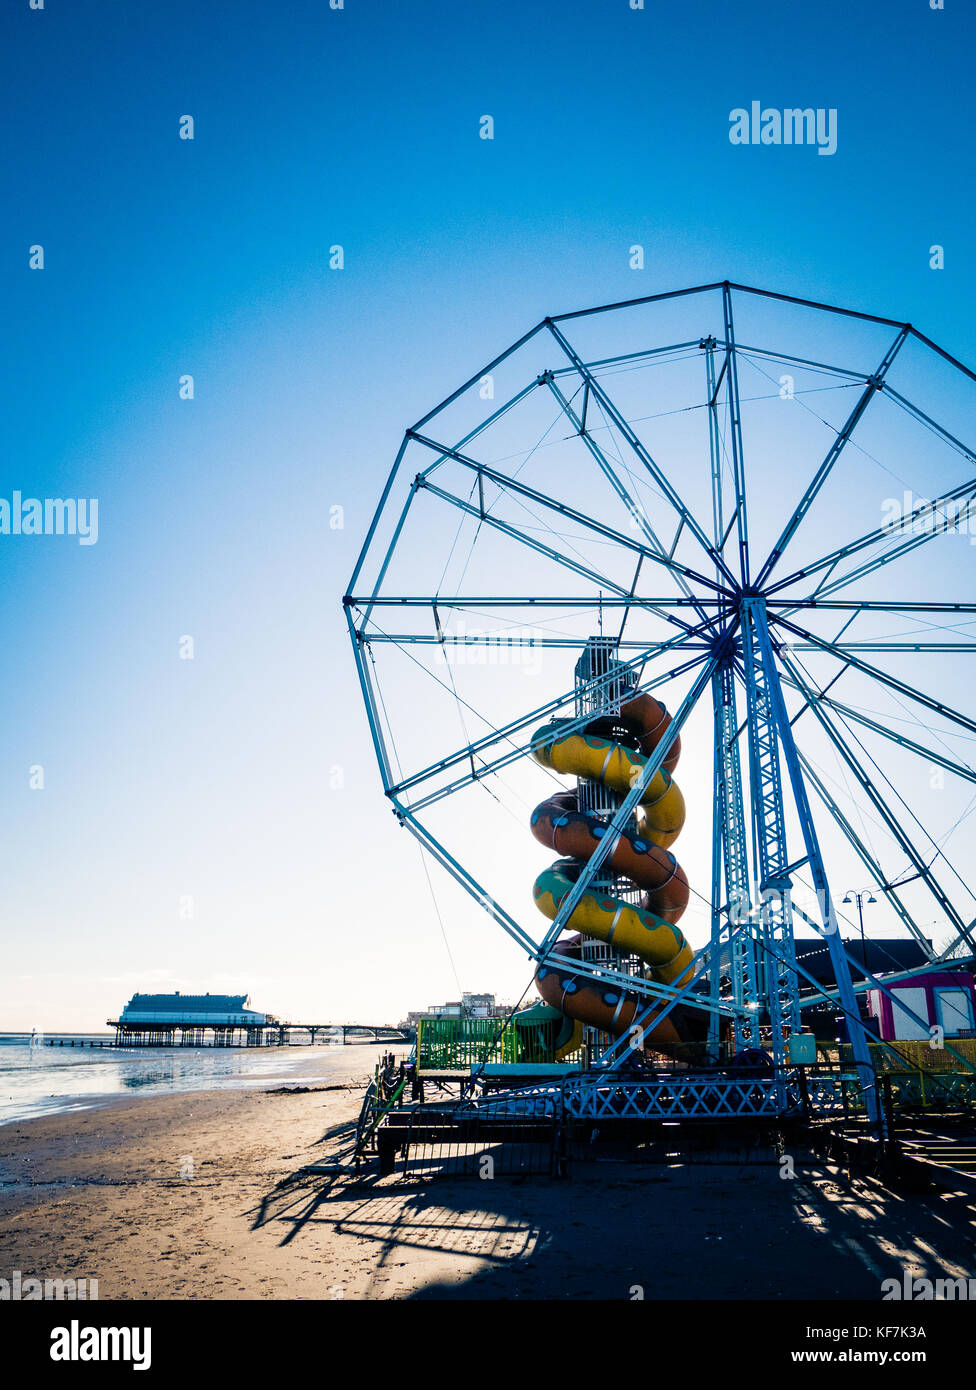 Ferris Wheel, Helter Skelter and Pier at the seaside of Cleethorpes Lincolnshire England UK - Stock Image